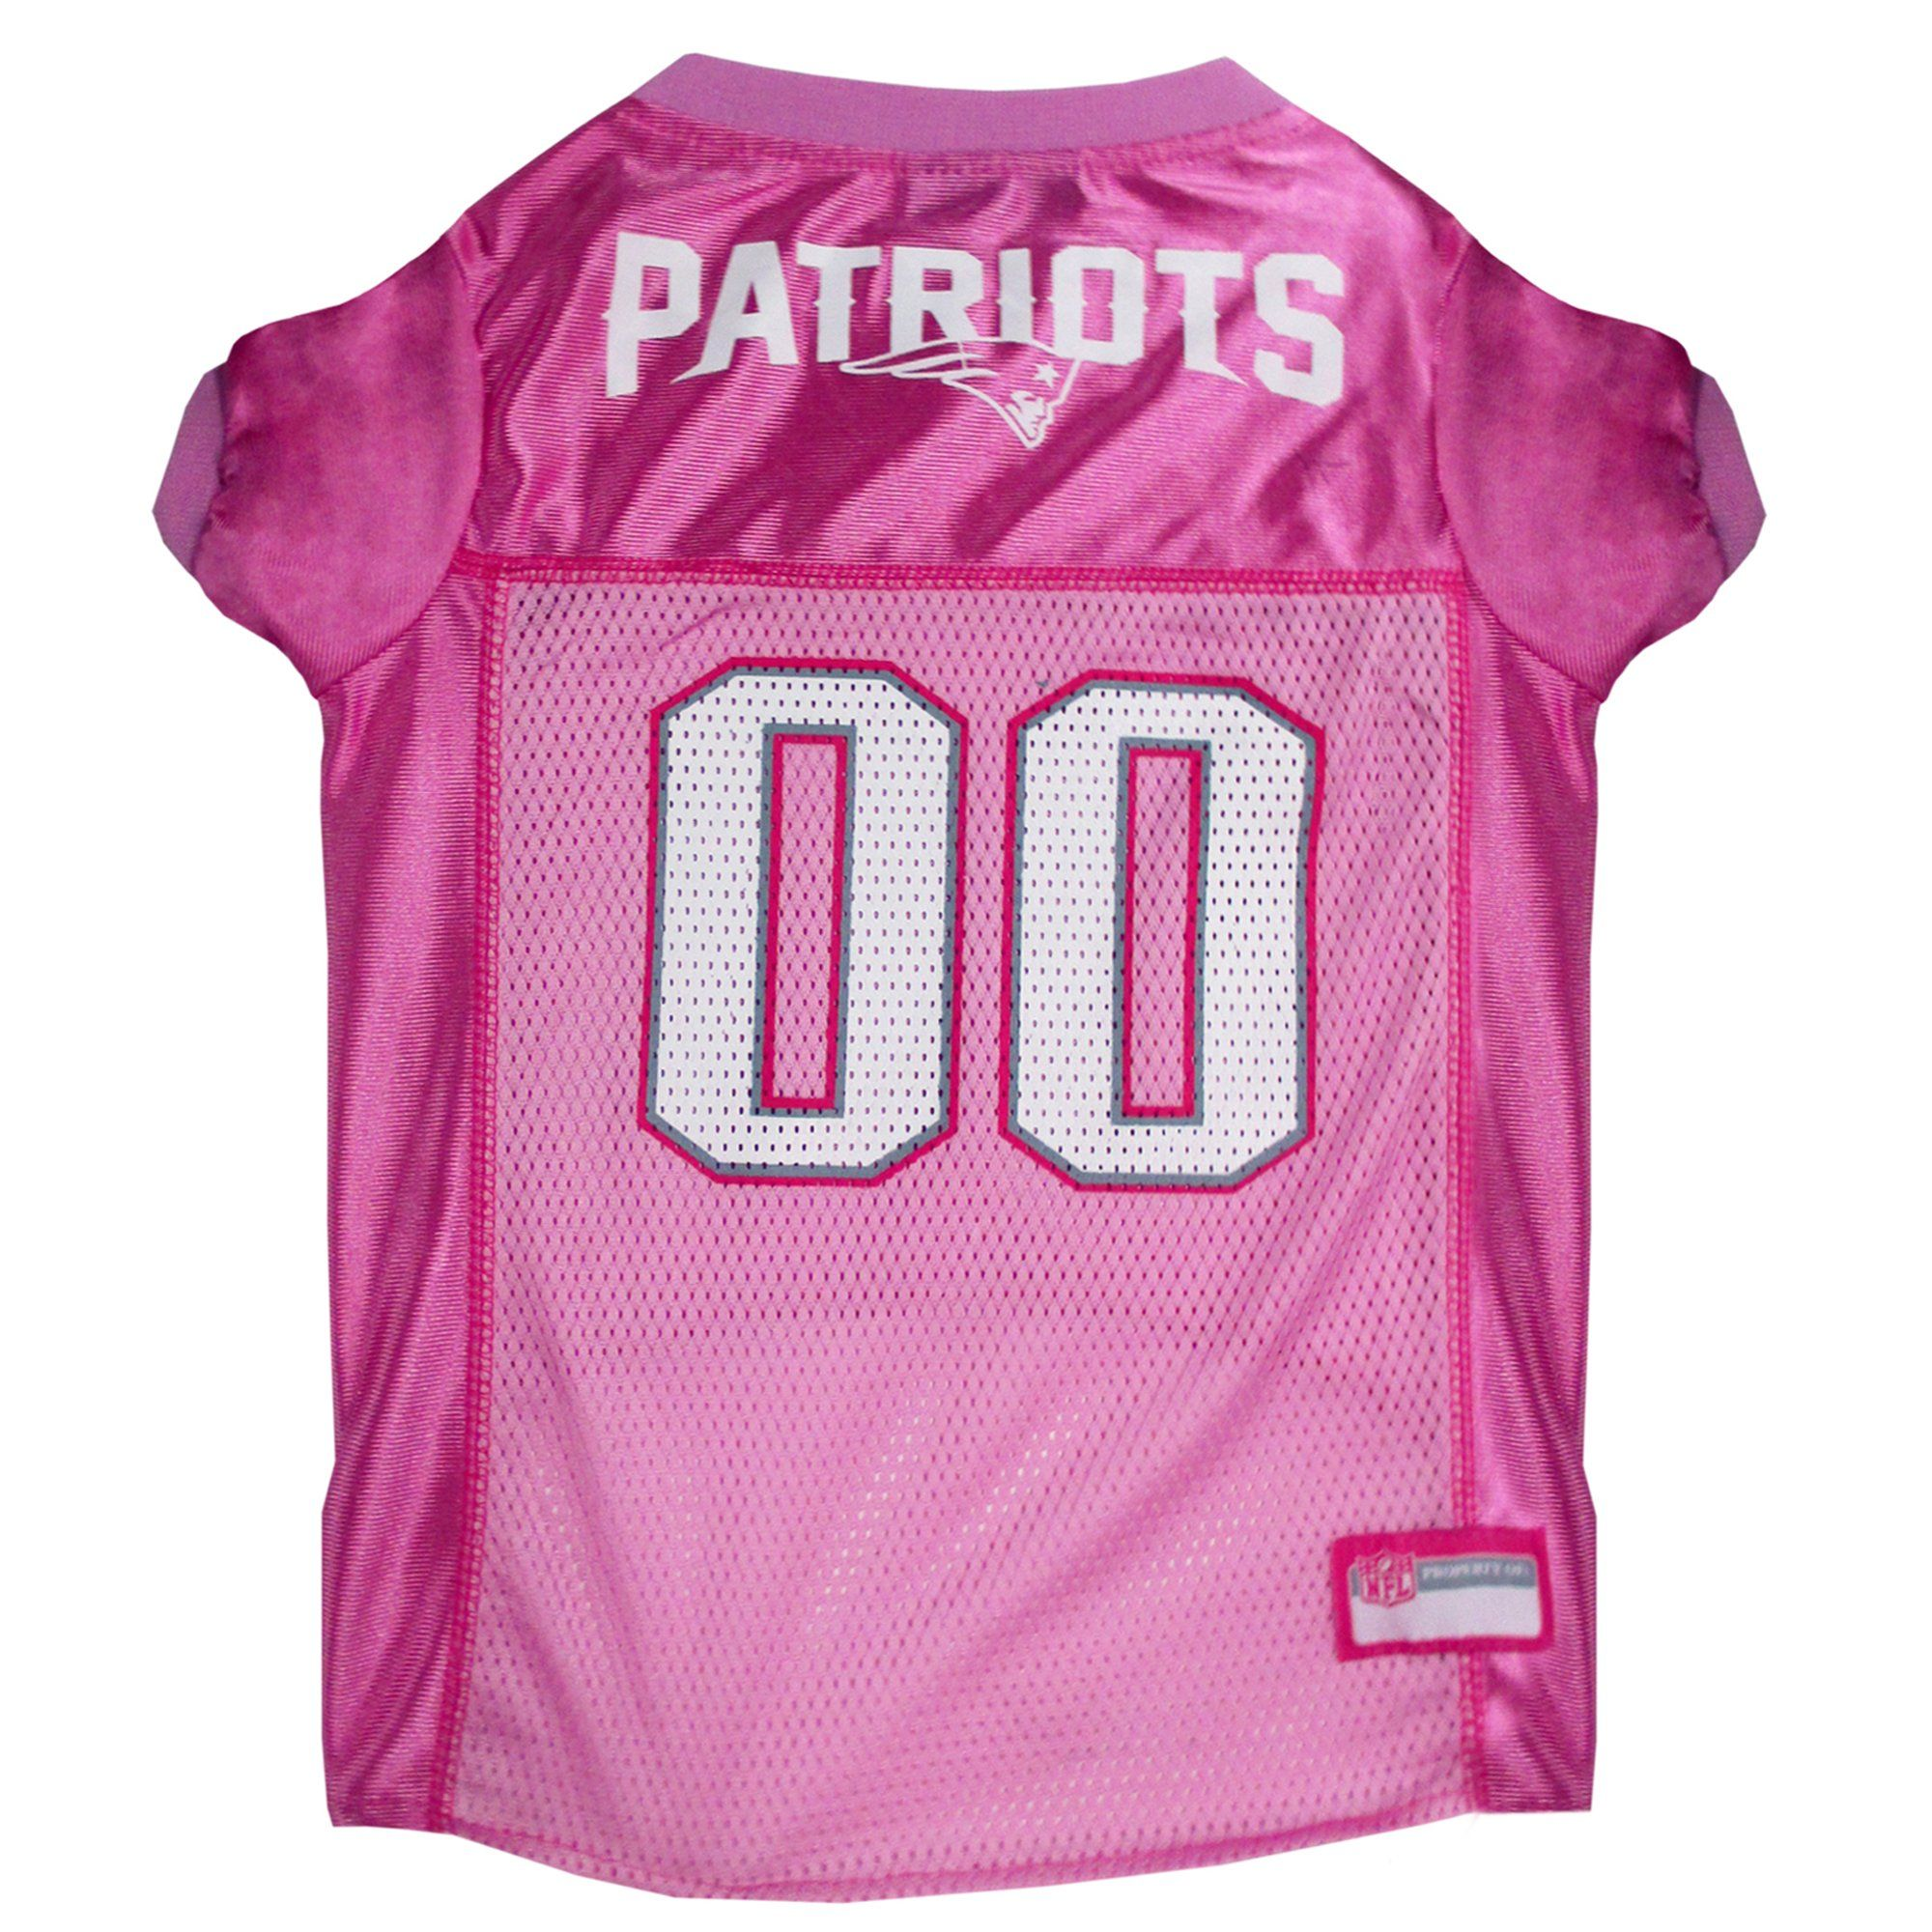 Pets First New England Patriots NFL Pink Mesh Jersey, X